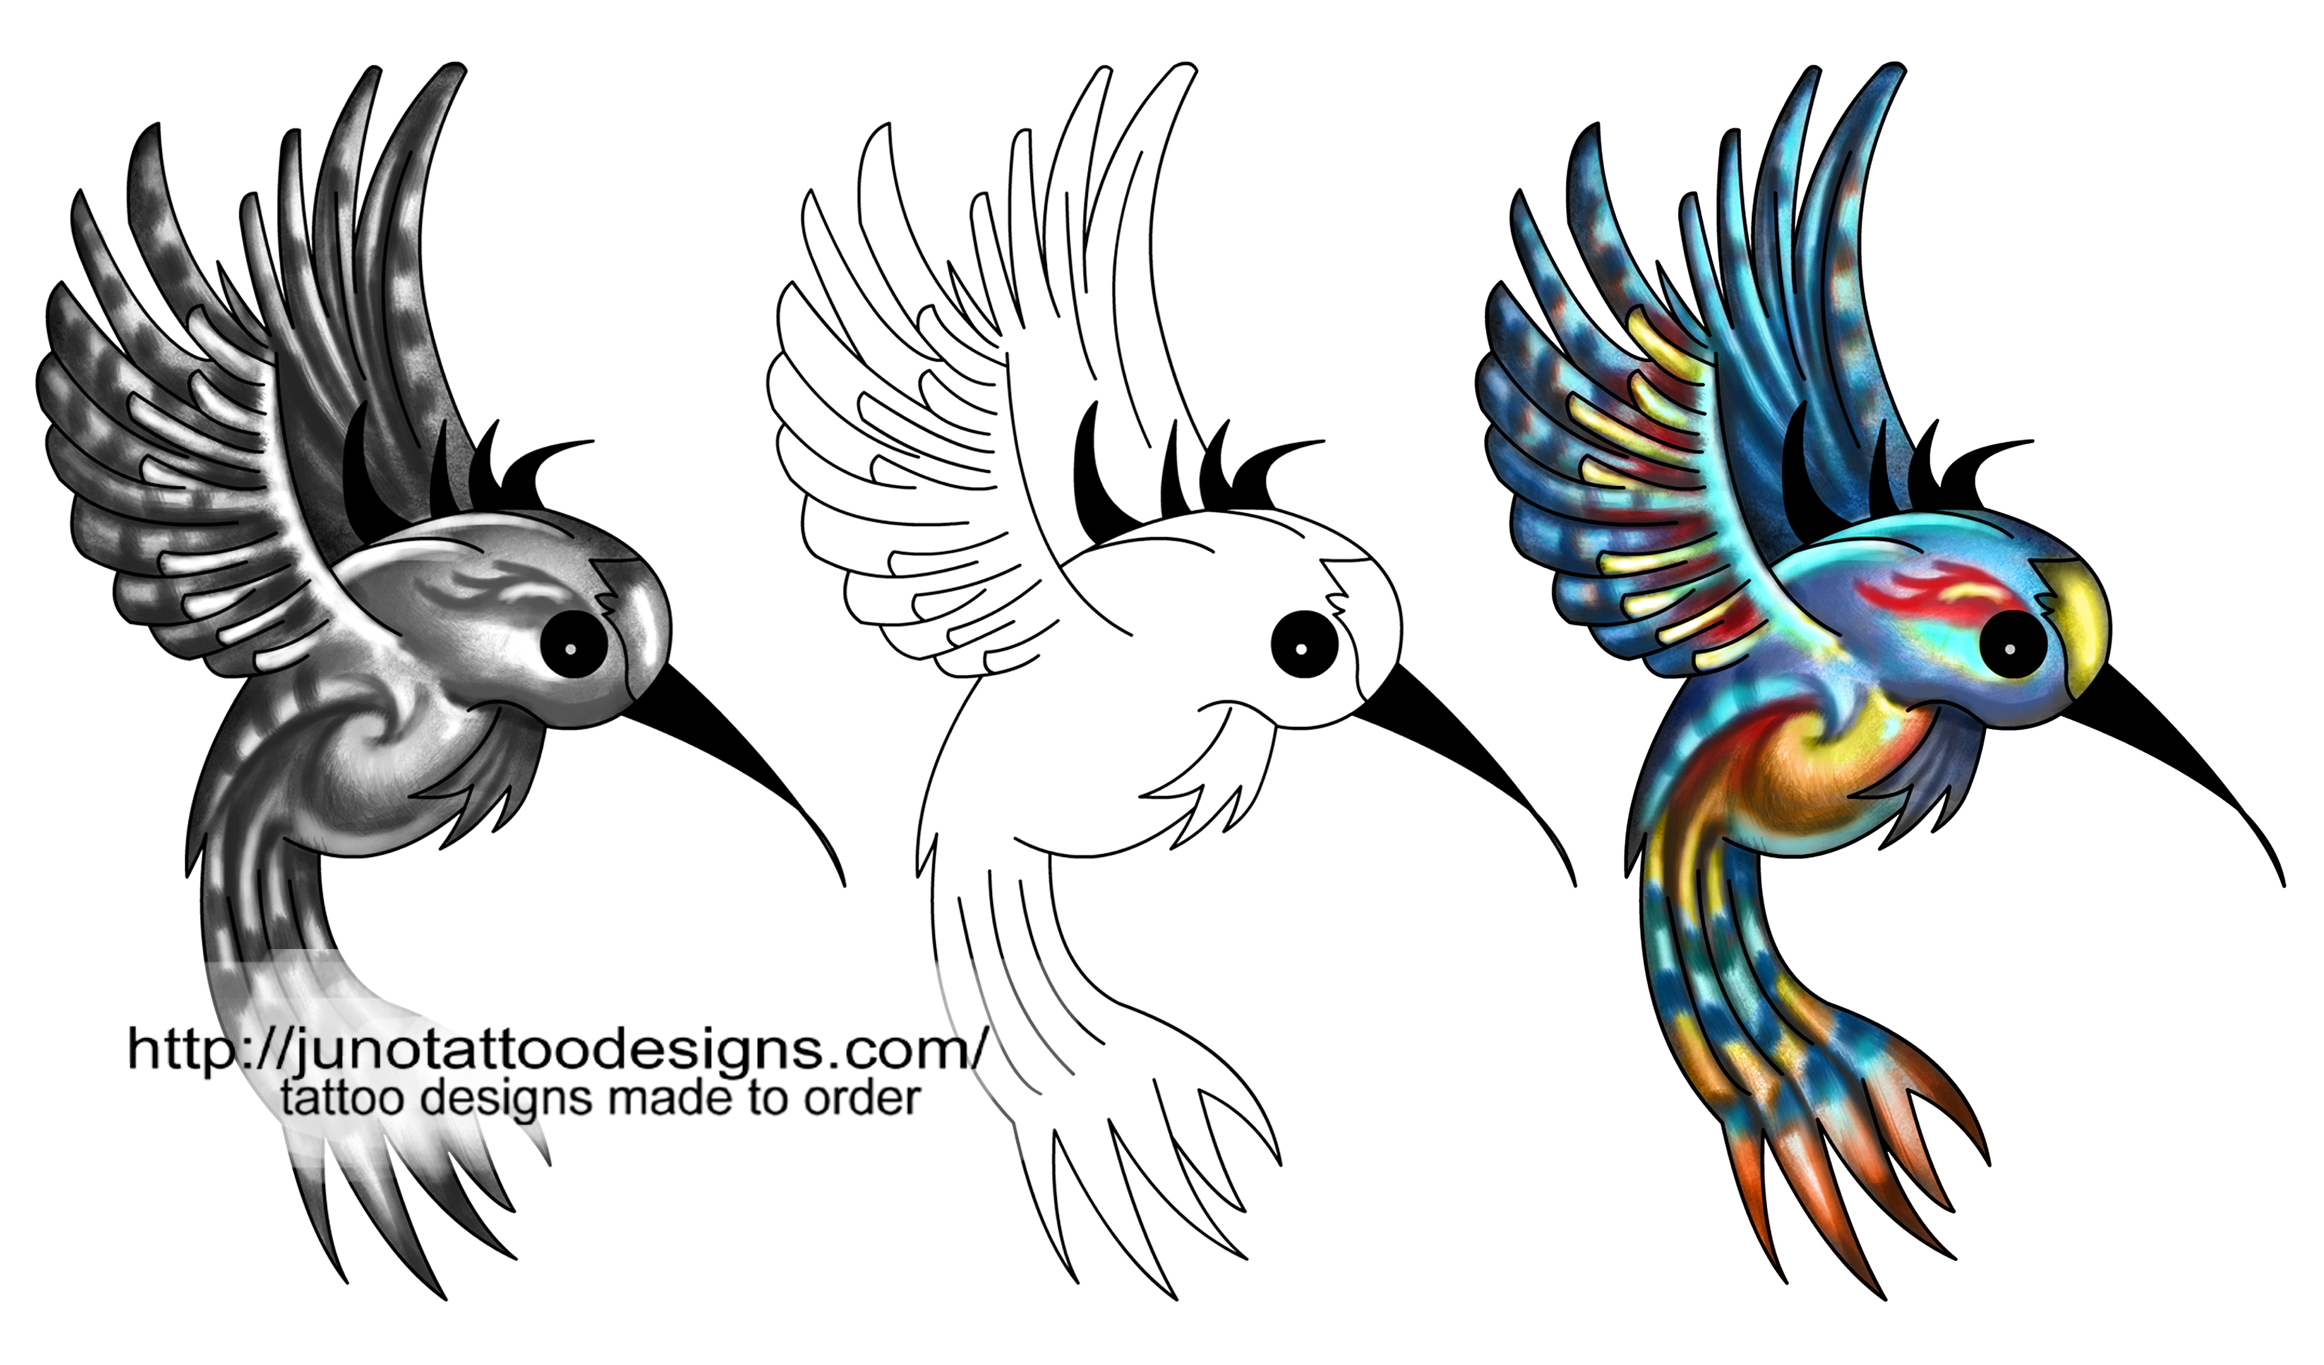 Flowers And Birds Custom Tattoos Made To Order By Juno Ideas And Designs